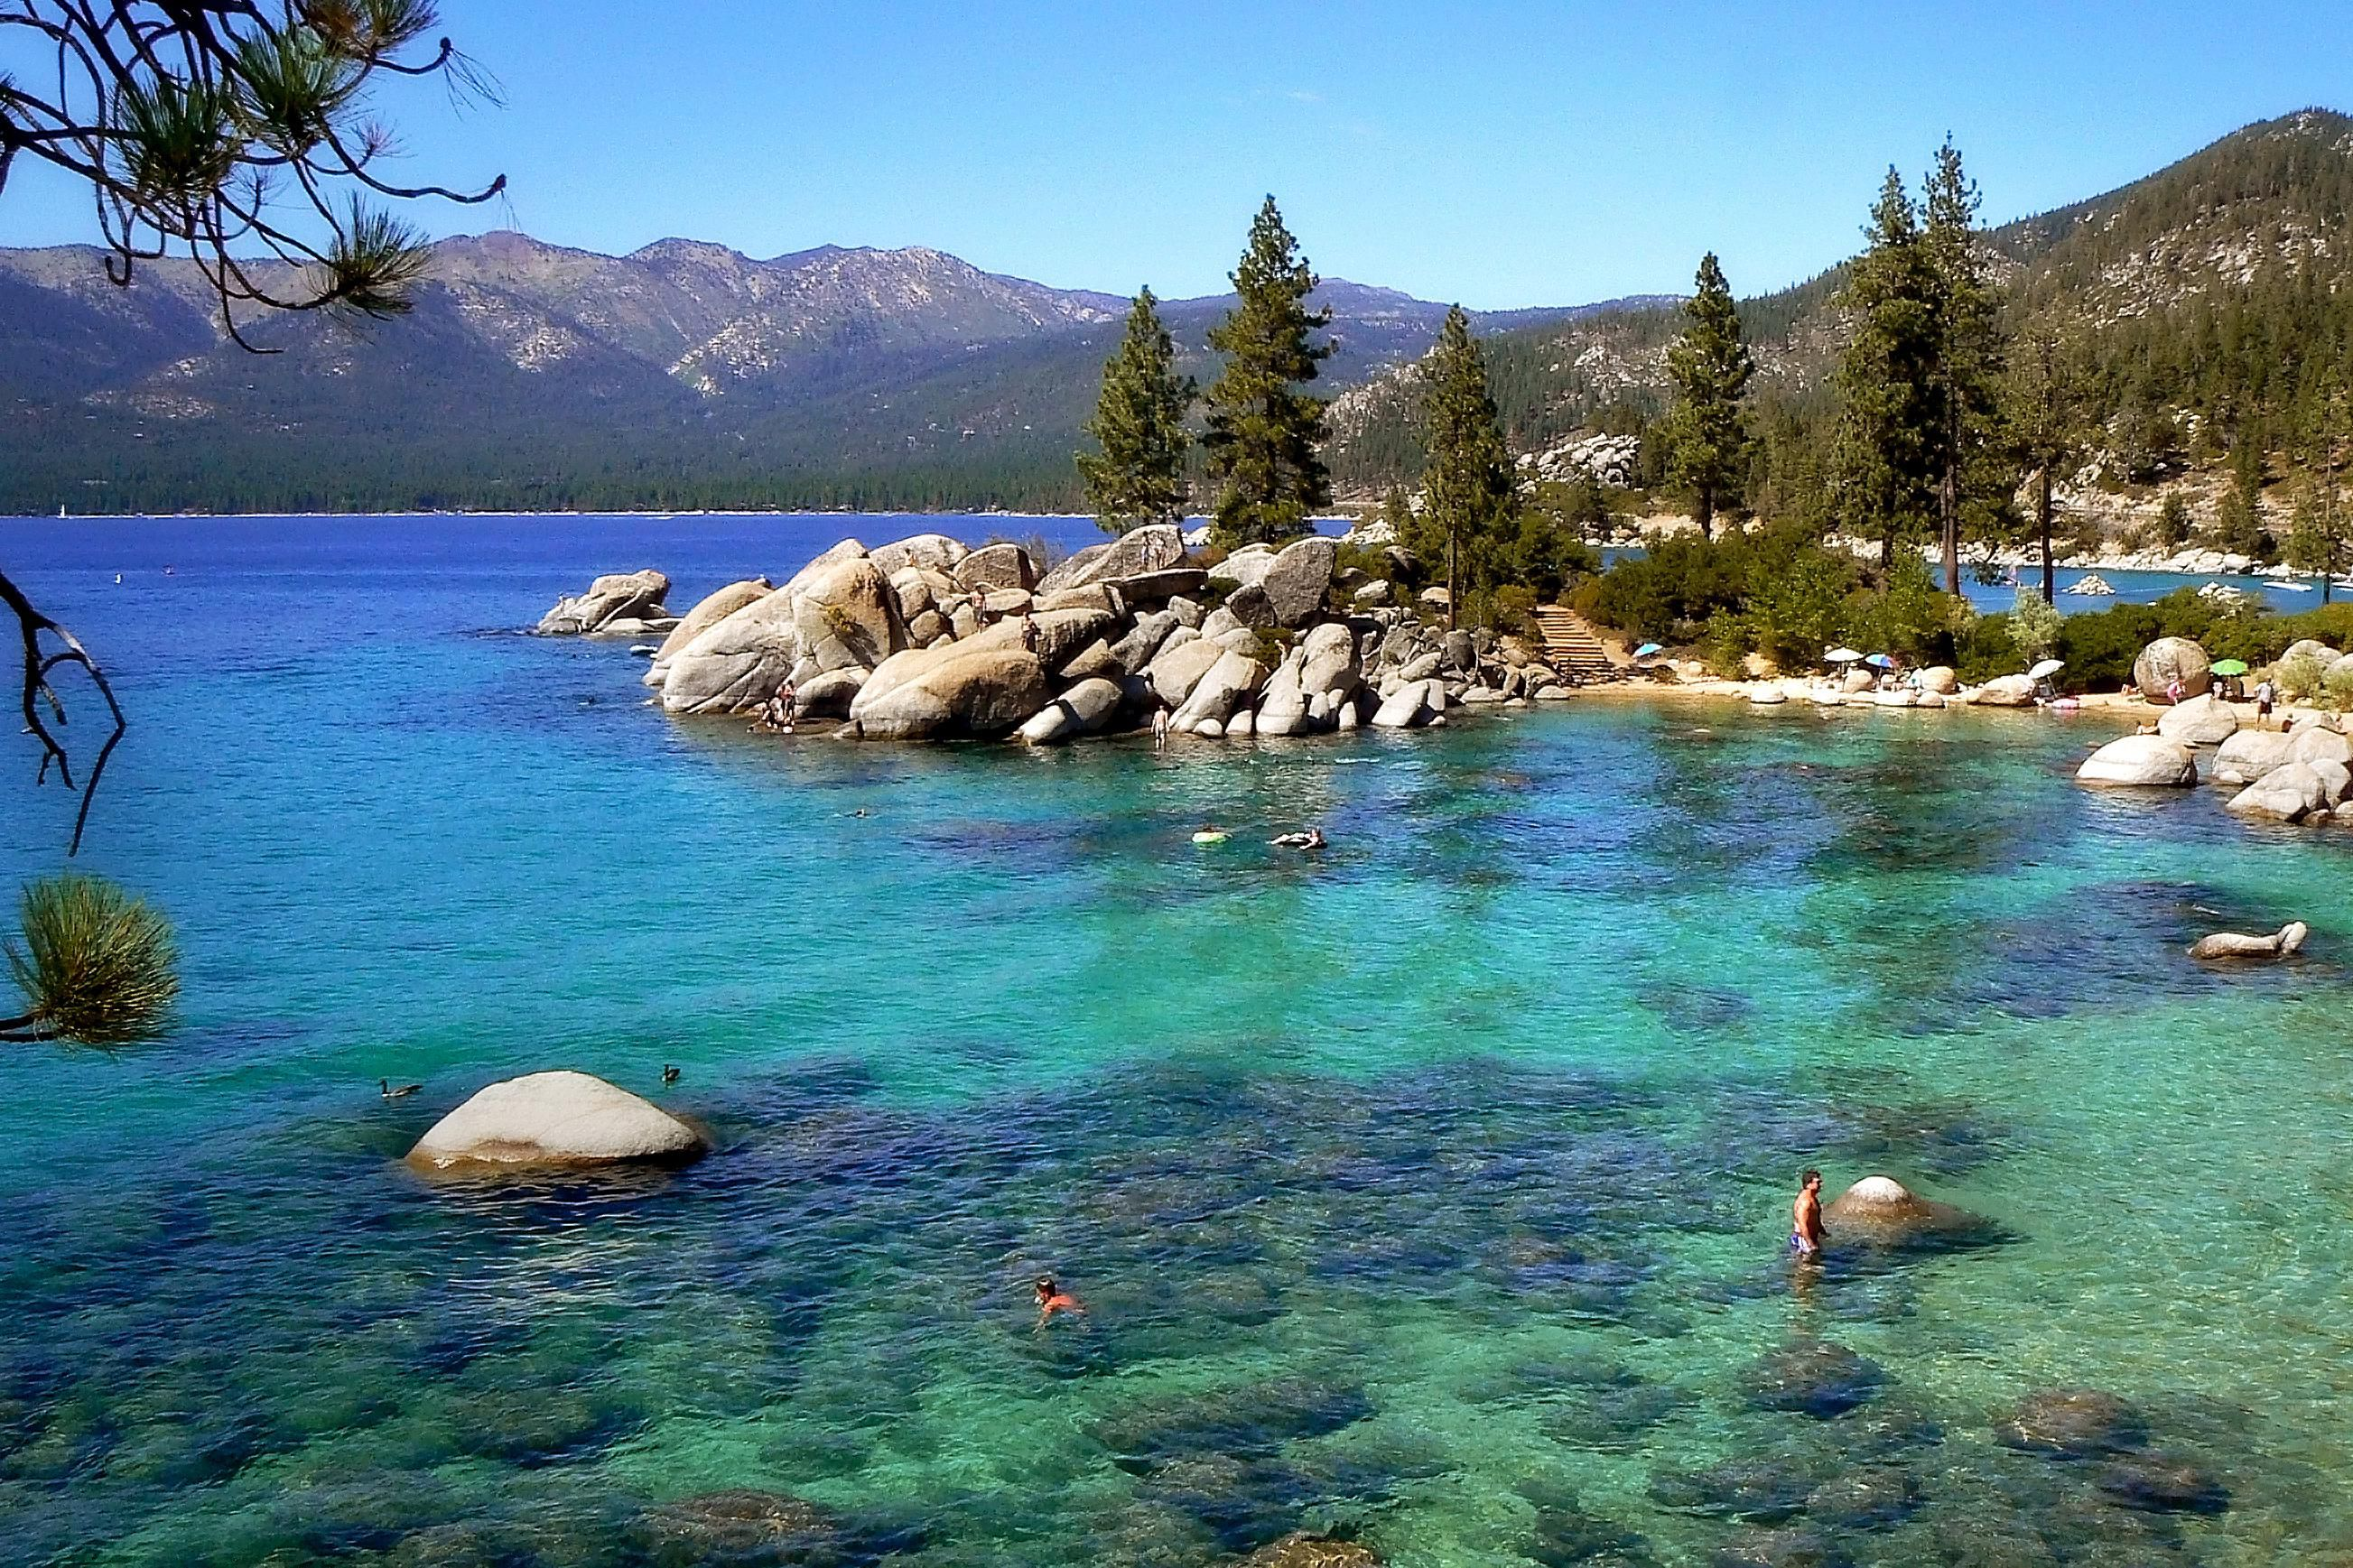 Guide to Planning a Lake Tahoe California Vacation